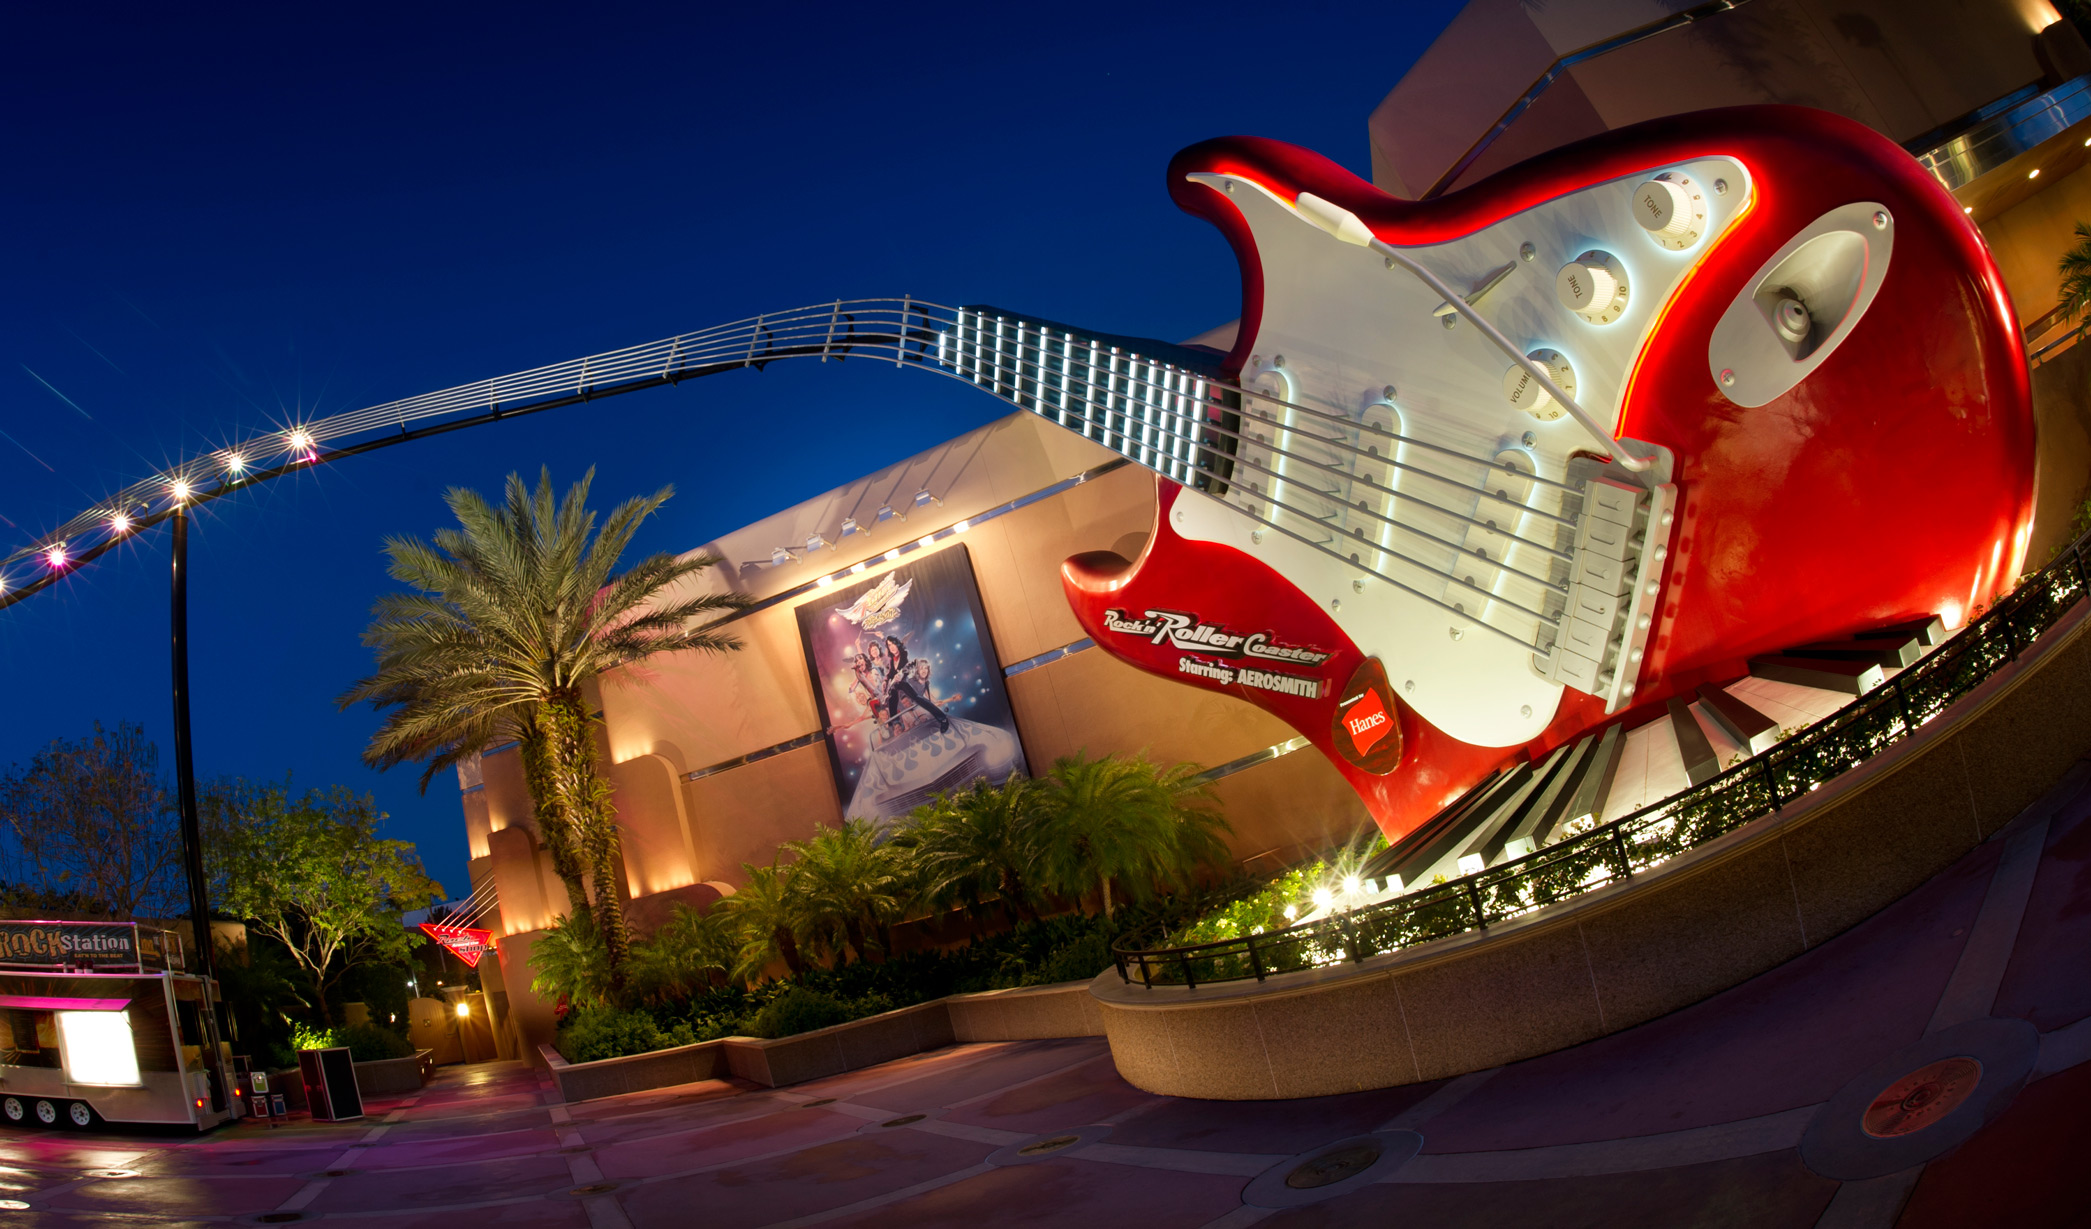 The neck of a giant guitar transforming into a track at Rock 'n' Roller Coaster Starring Aerosmith